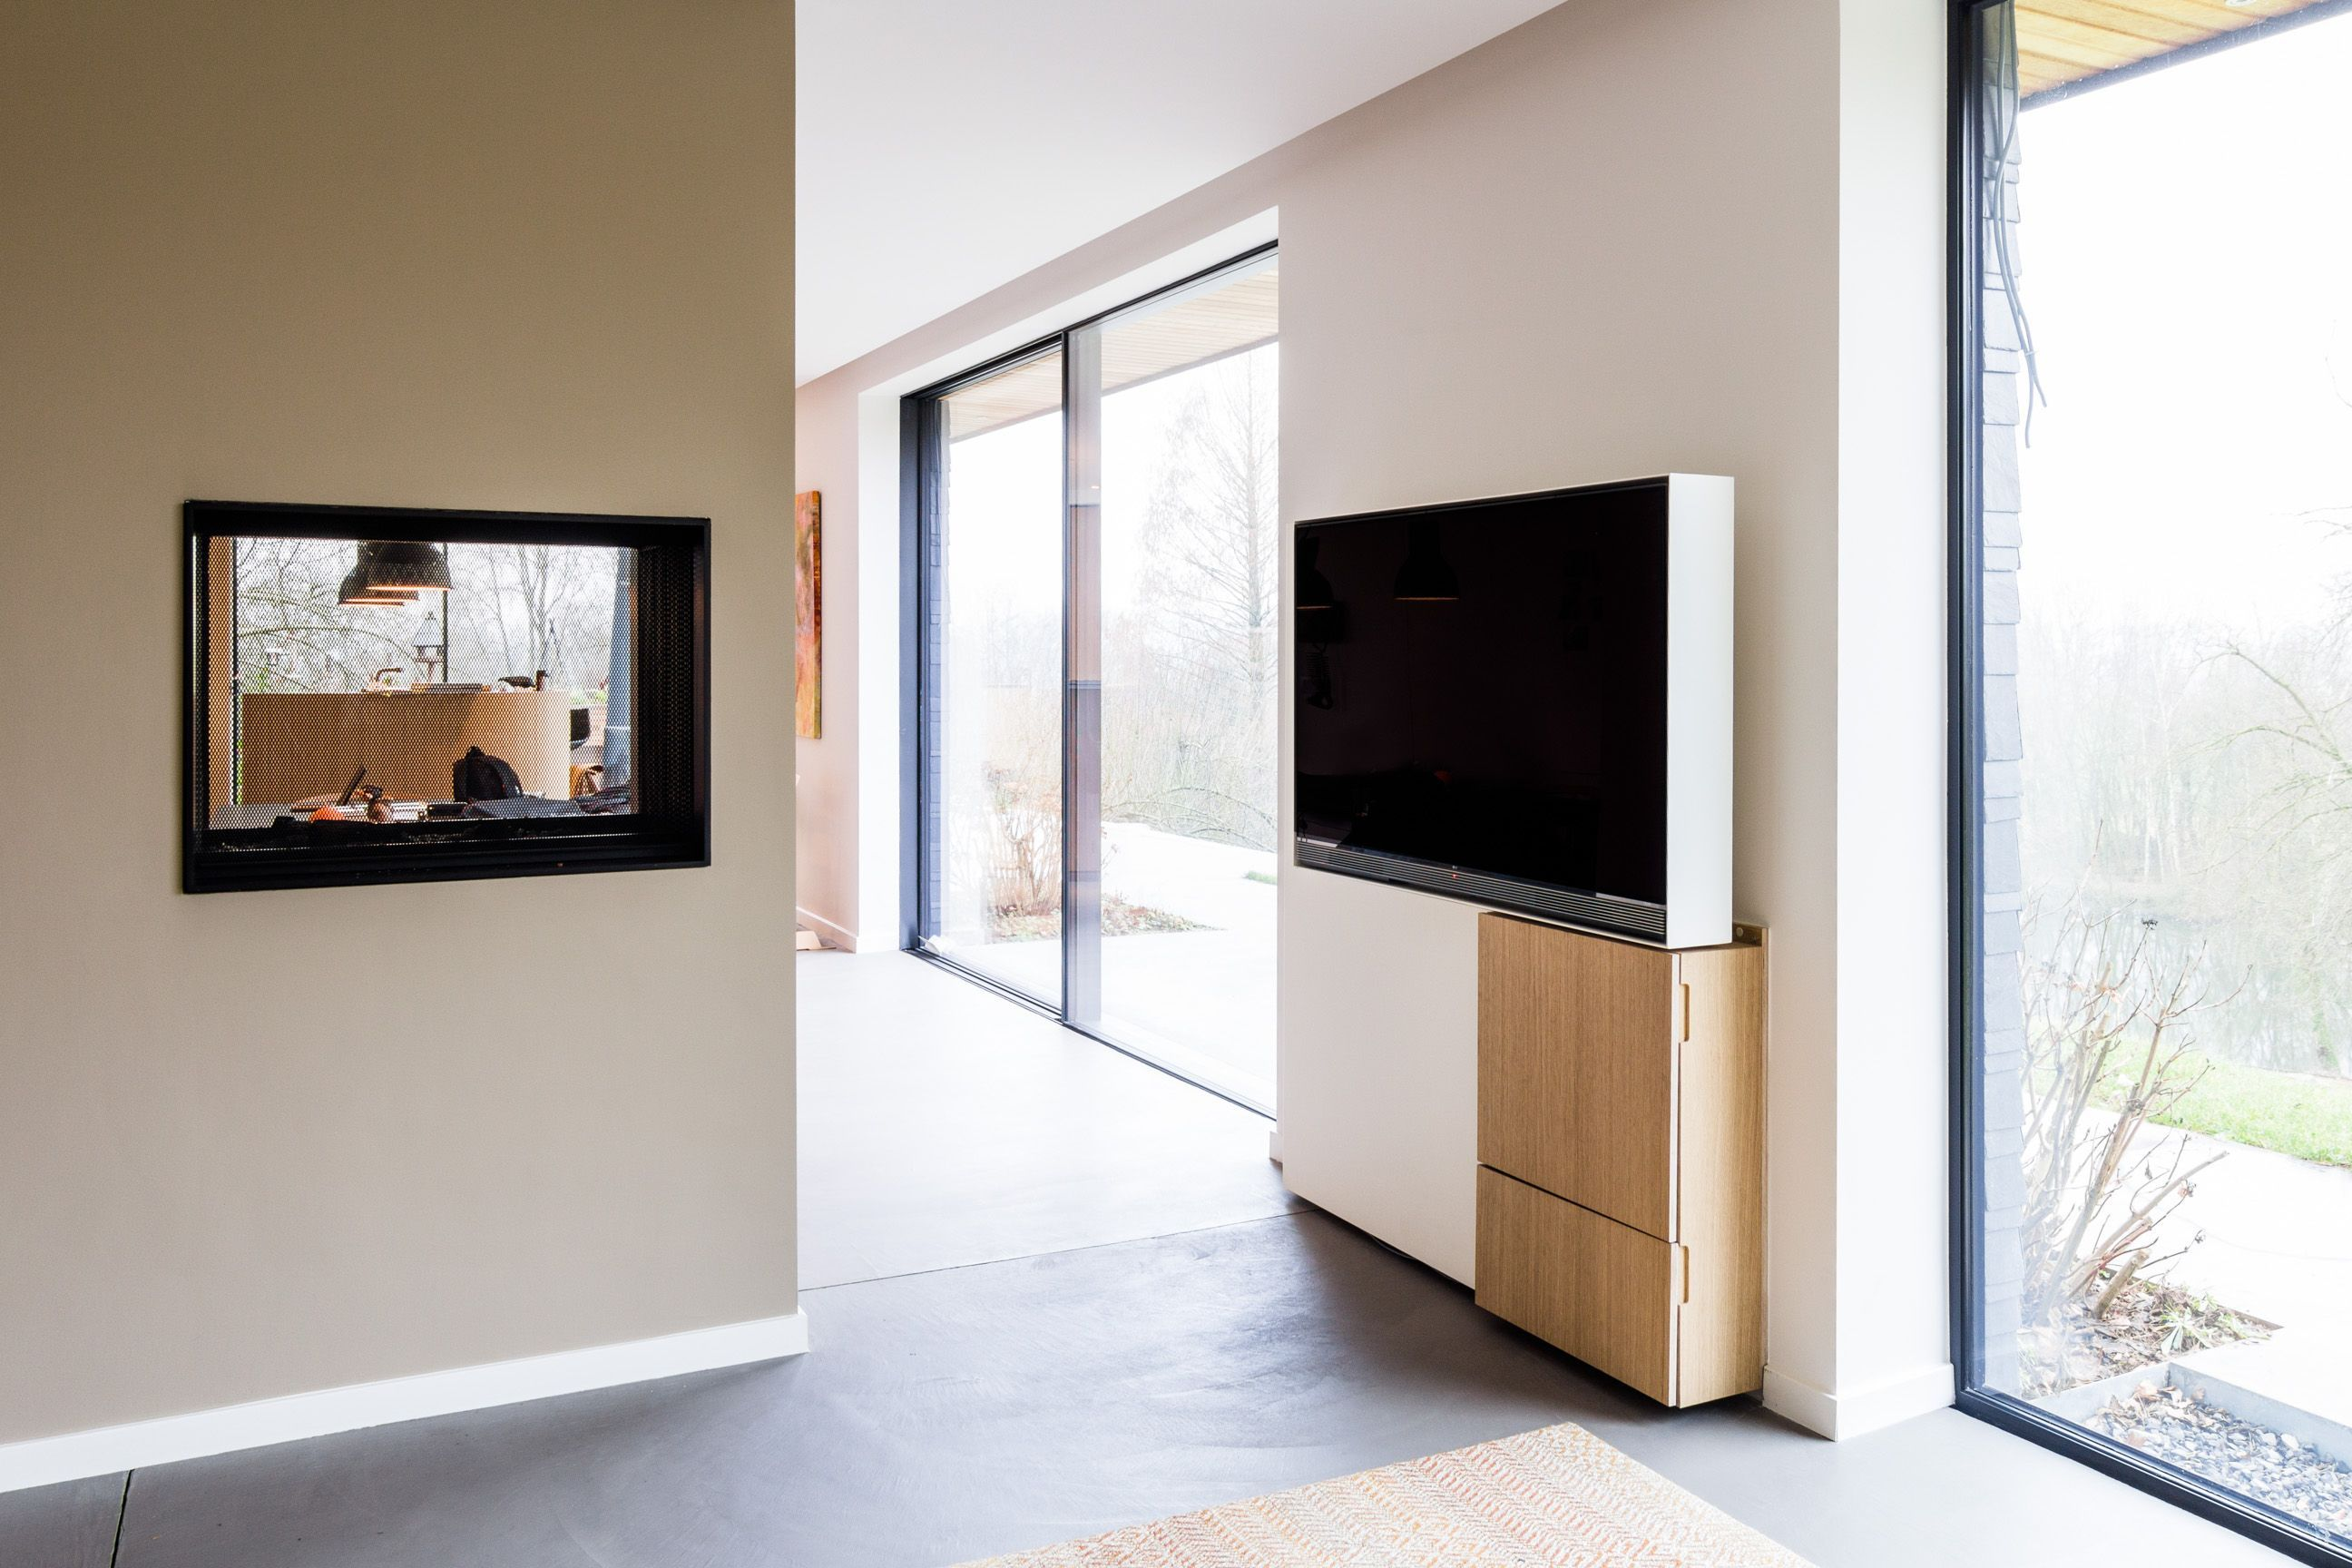 Meuble Tv Made In Design Meuble Tv Pivotant En Acier Et Bois Pivoting Tv Set Made Of Steel